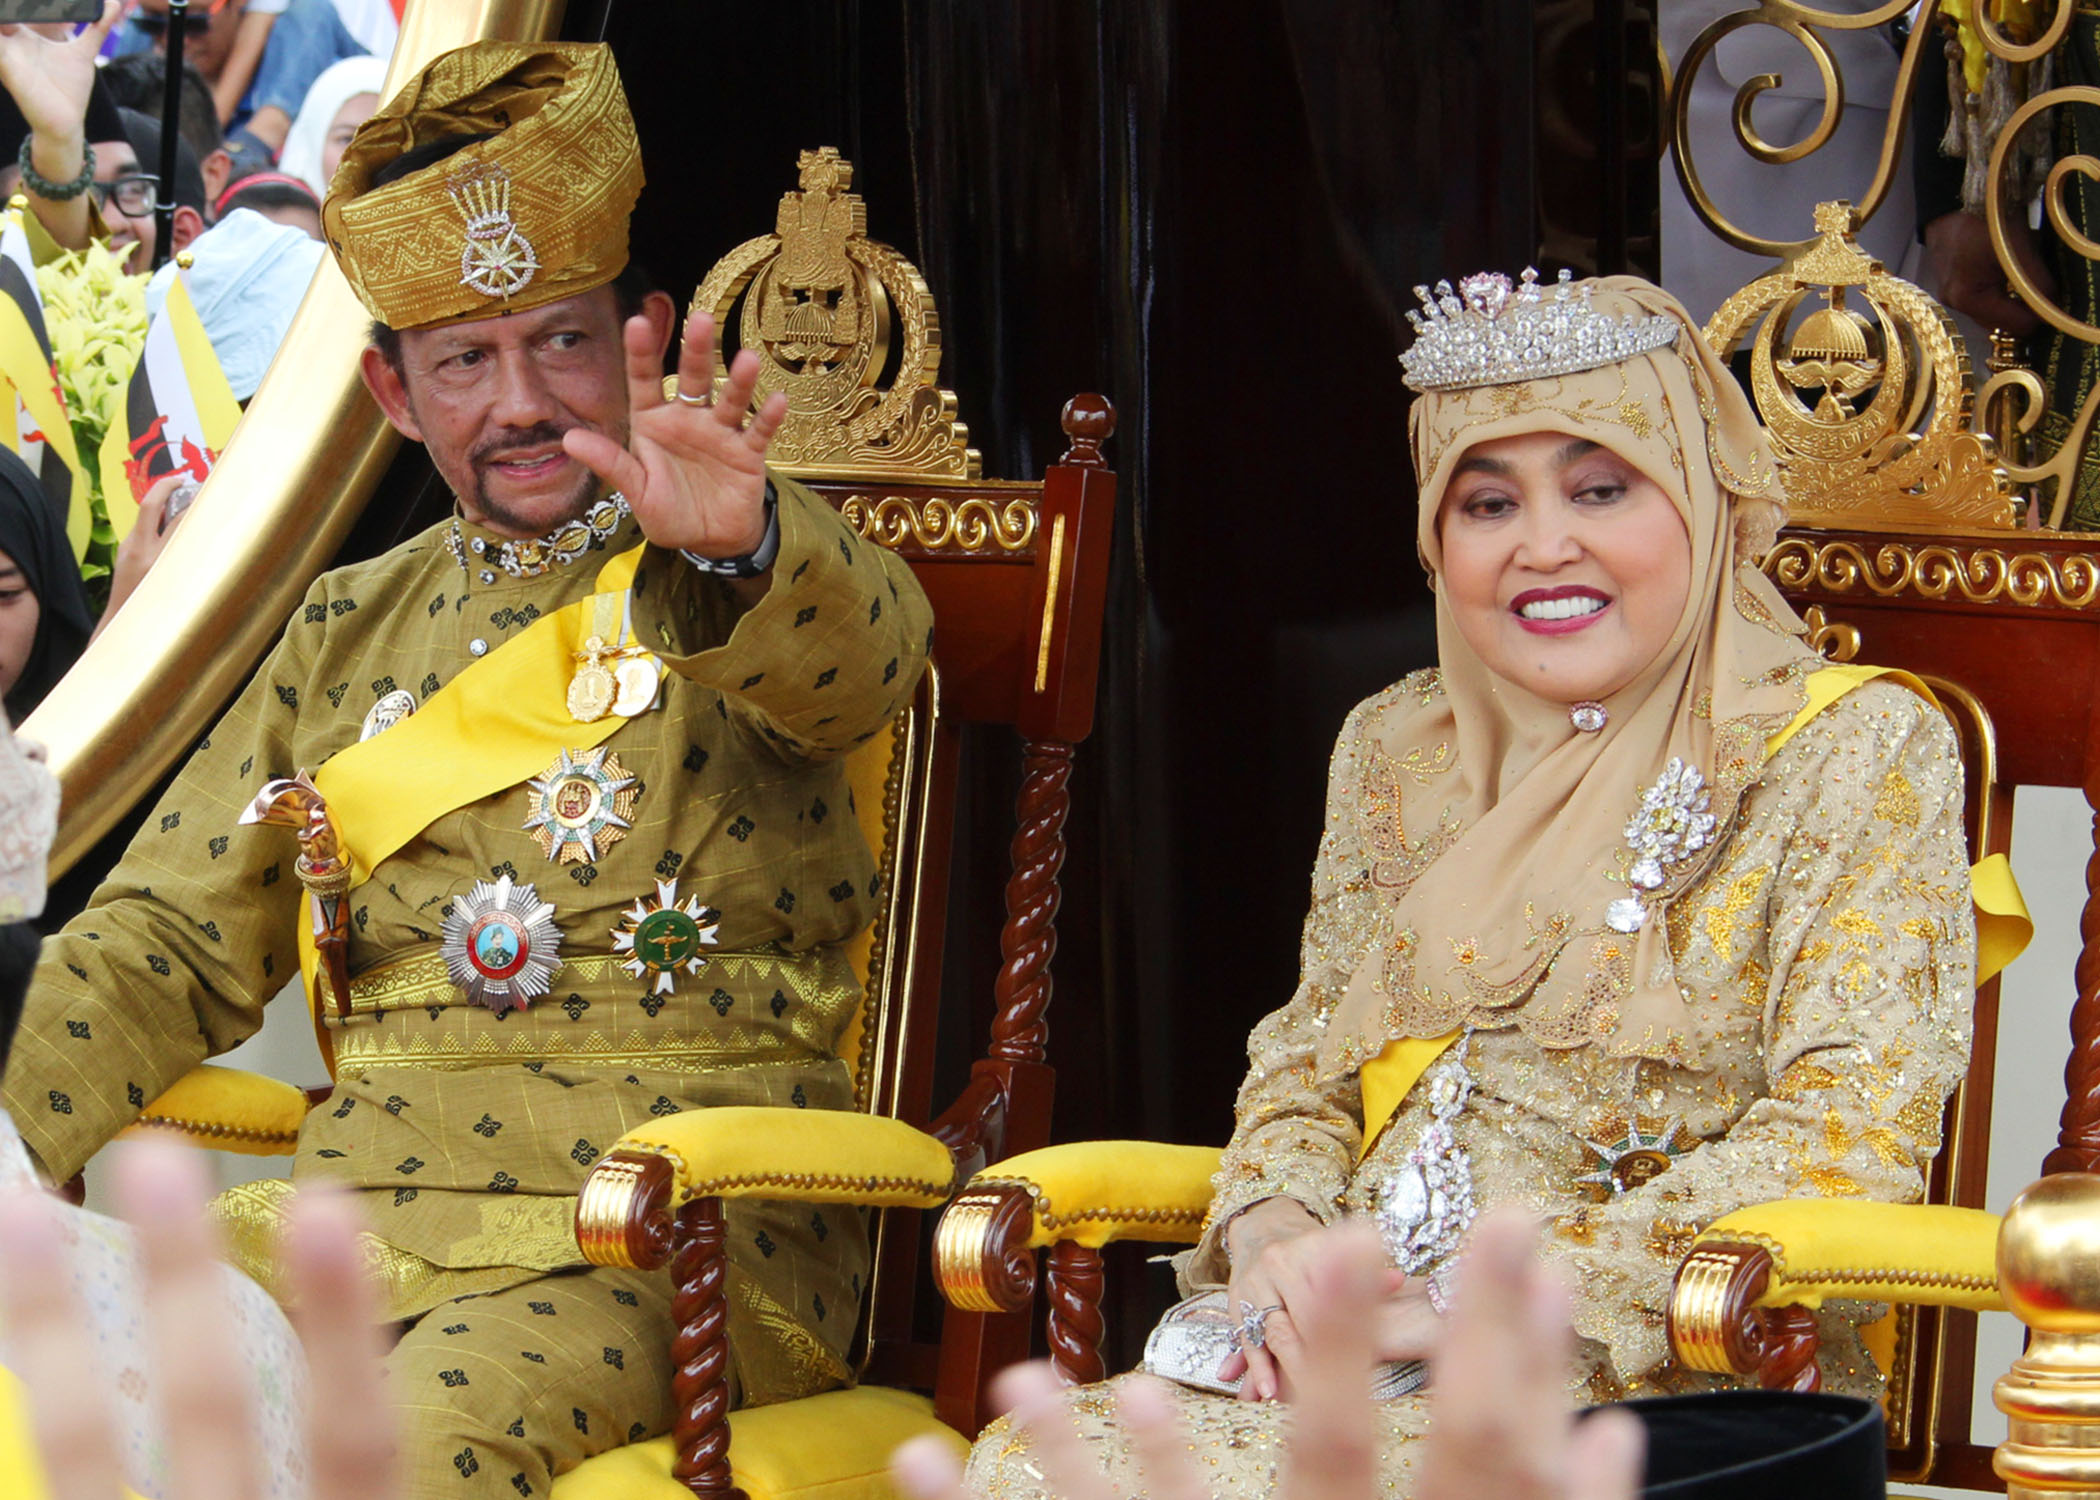 His Majesty waves to the crowd during the Golden Jubilee procession through the capital. Photo: Infofoto